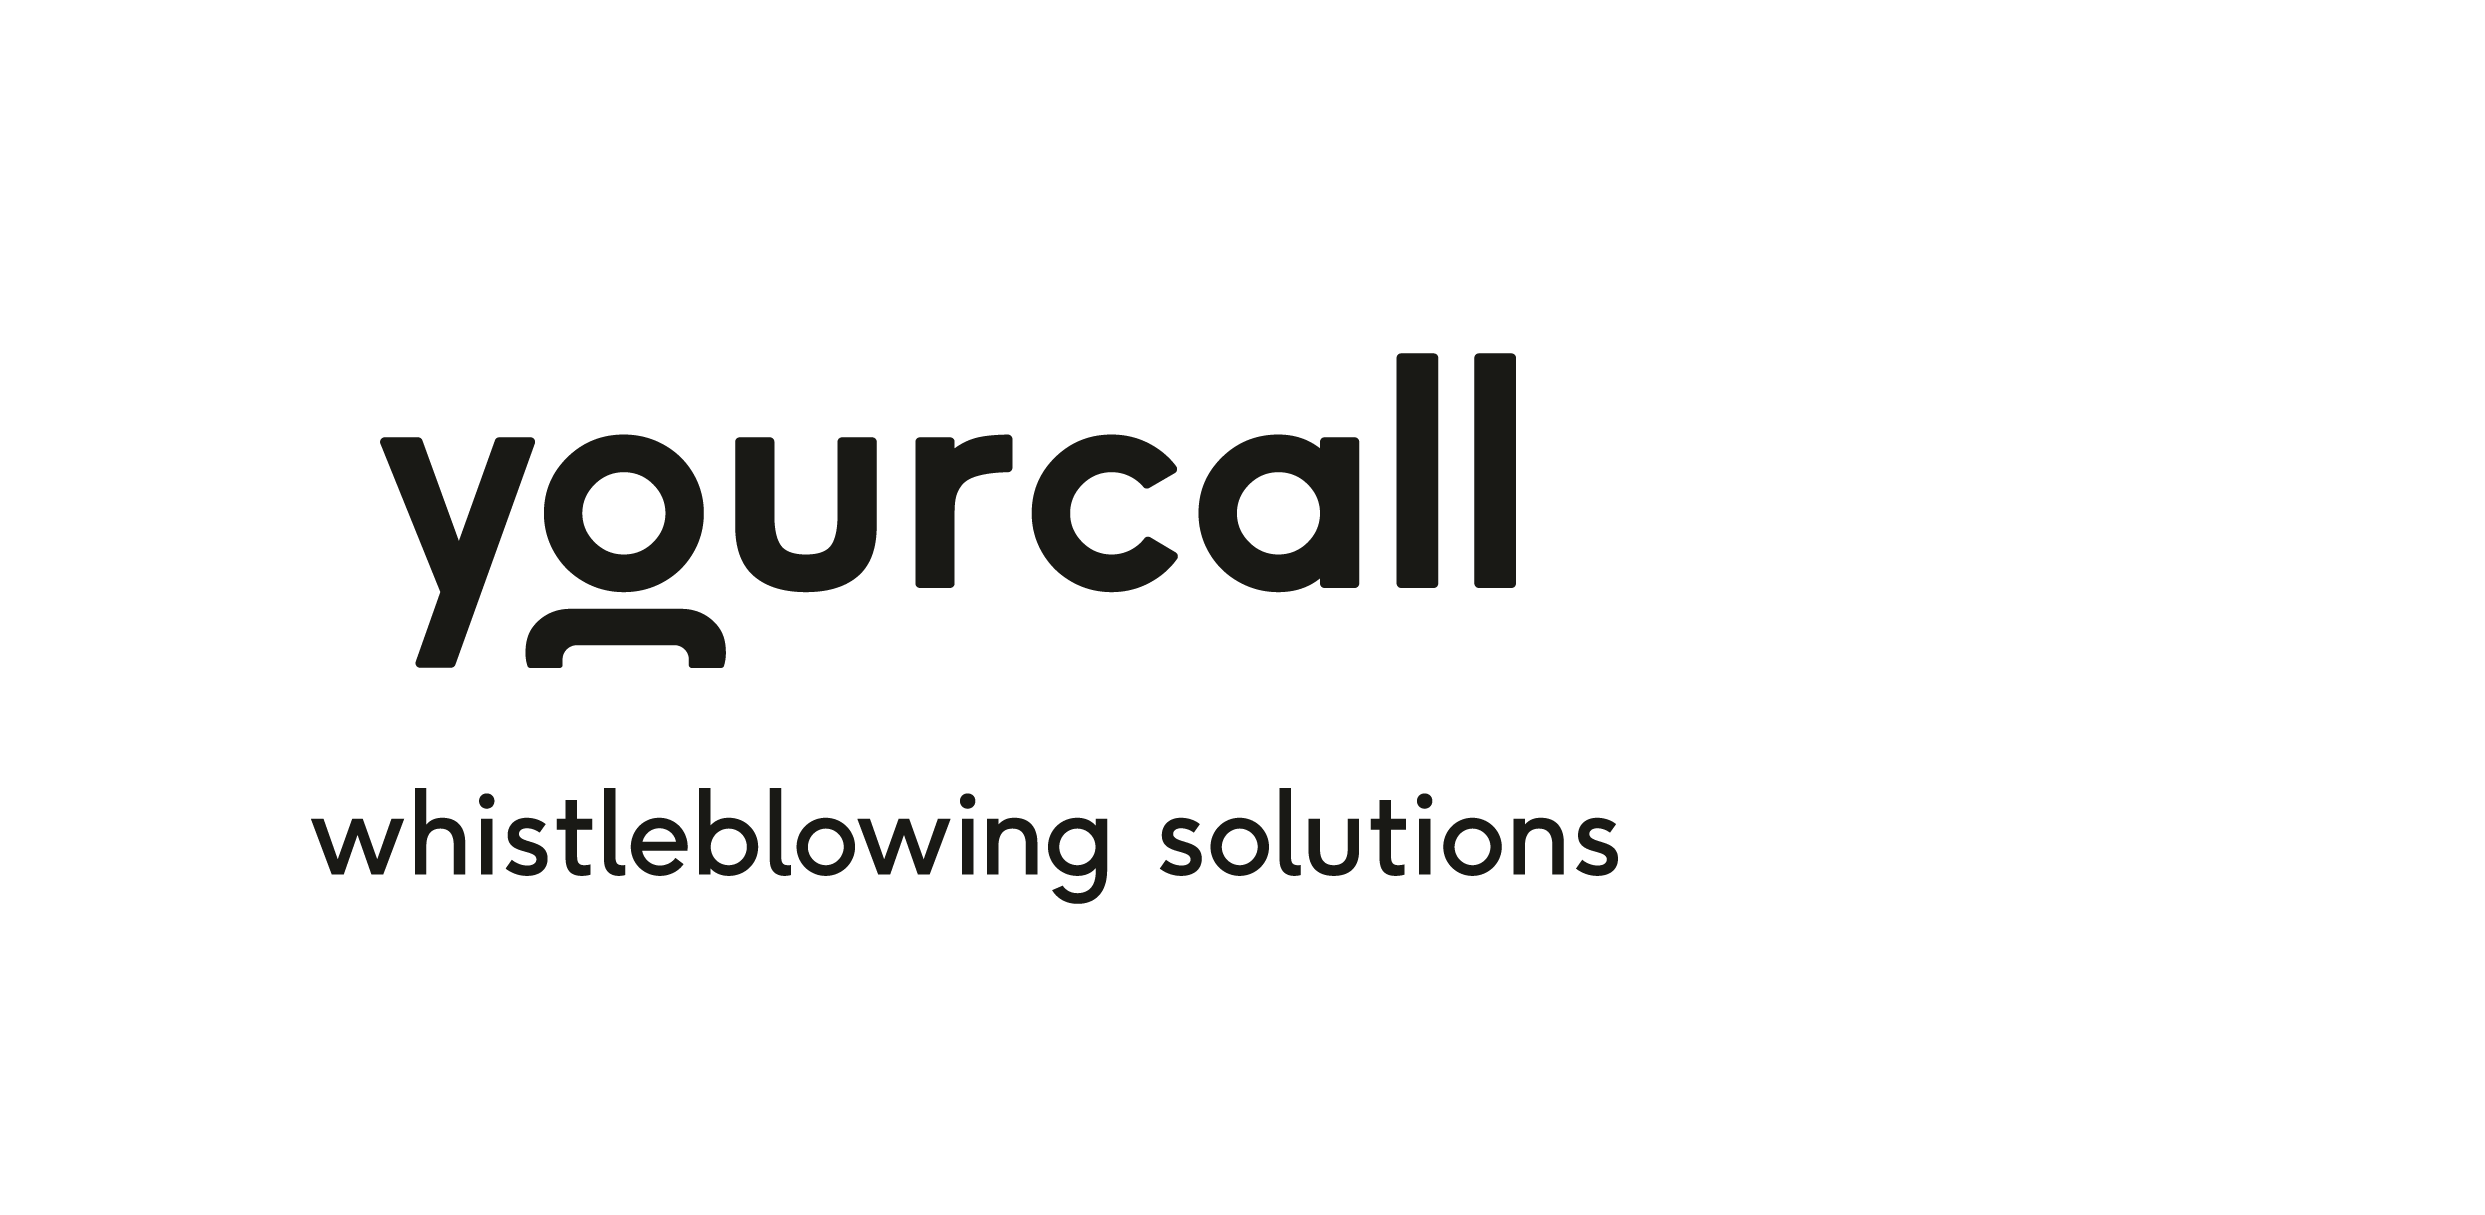 yourcall+tag_lockup[m]_yourcall_[m] rounded